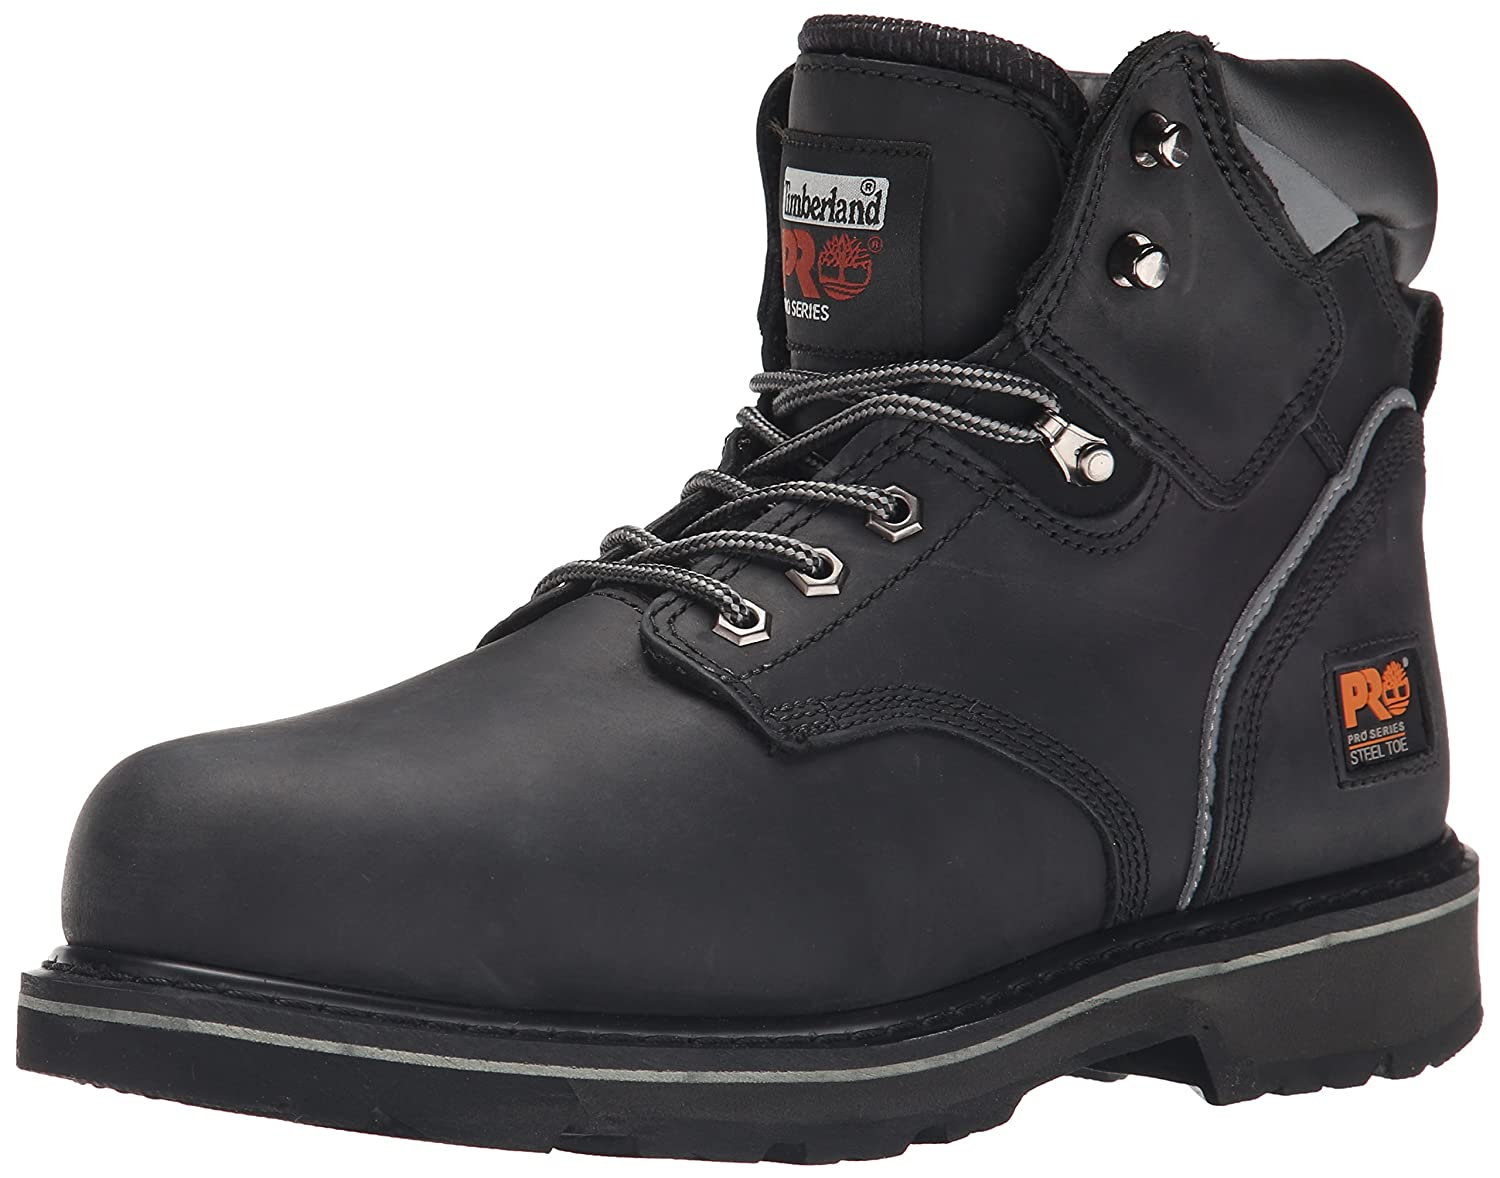 "Amazon.com: Timberland PRO Men's Pitboss 6"" Steel-Toe Boot: Shoes"